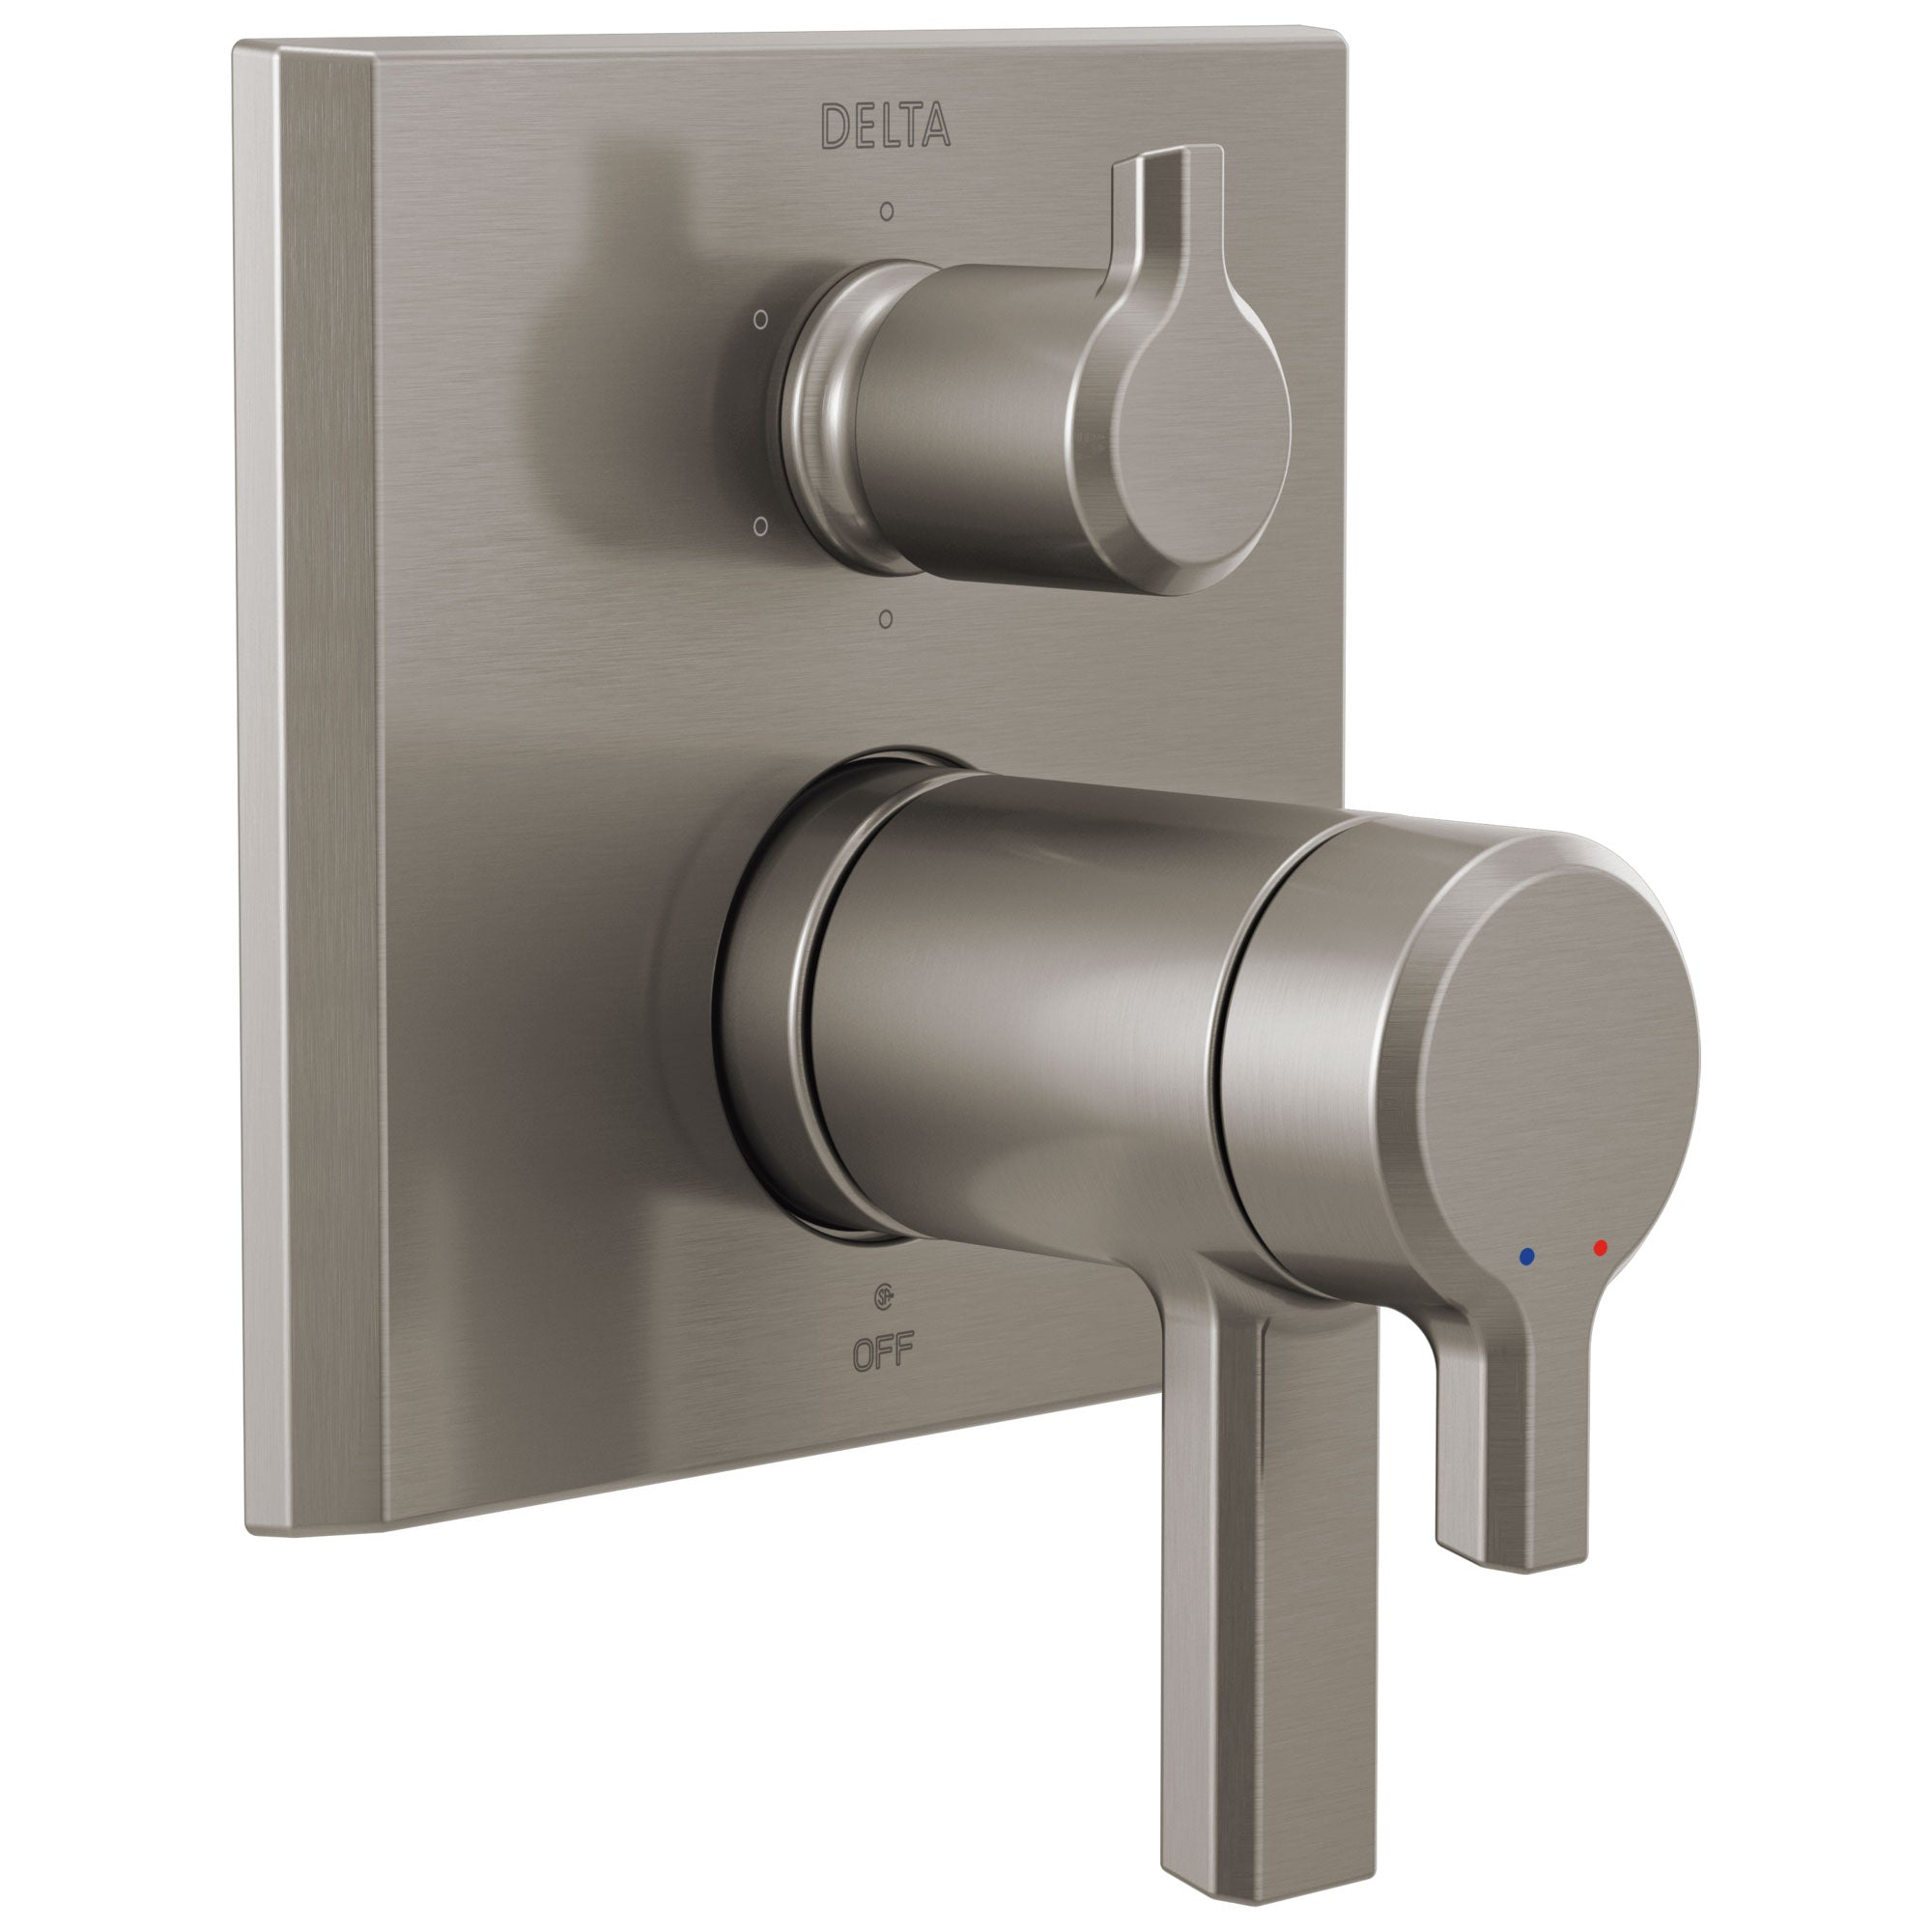 Delta Pivotal Stainless Steel Finish Thermostatic 17T Shower System Control with 6-Setting Integrated Diverter Includes Rough Valve and Handles D3654V